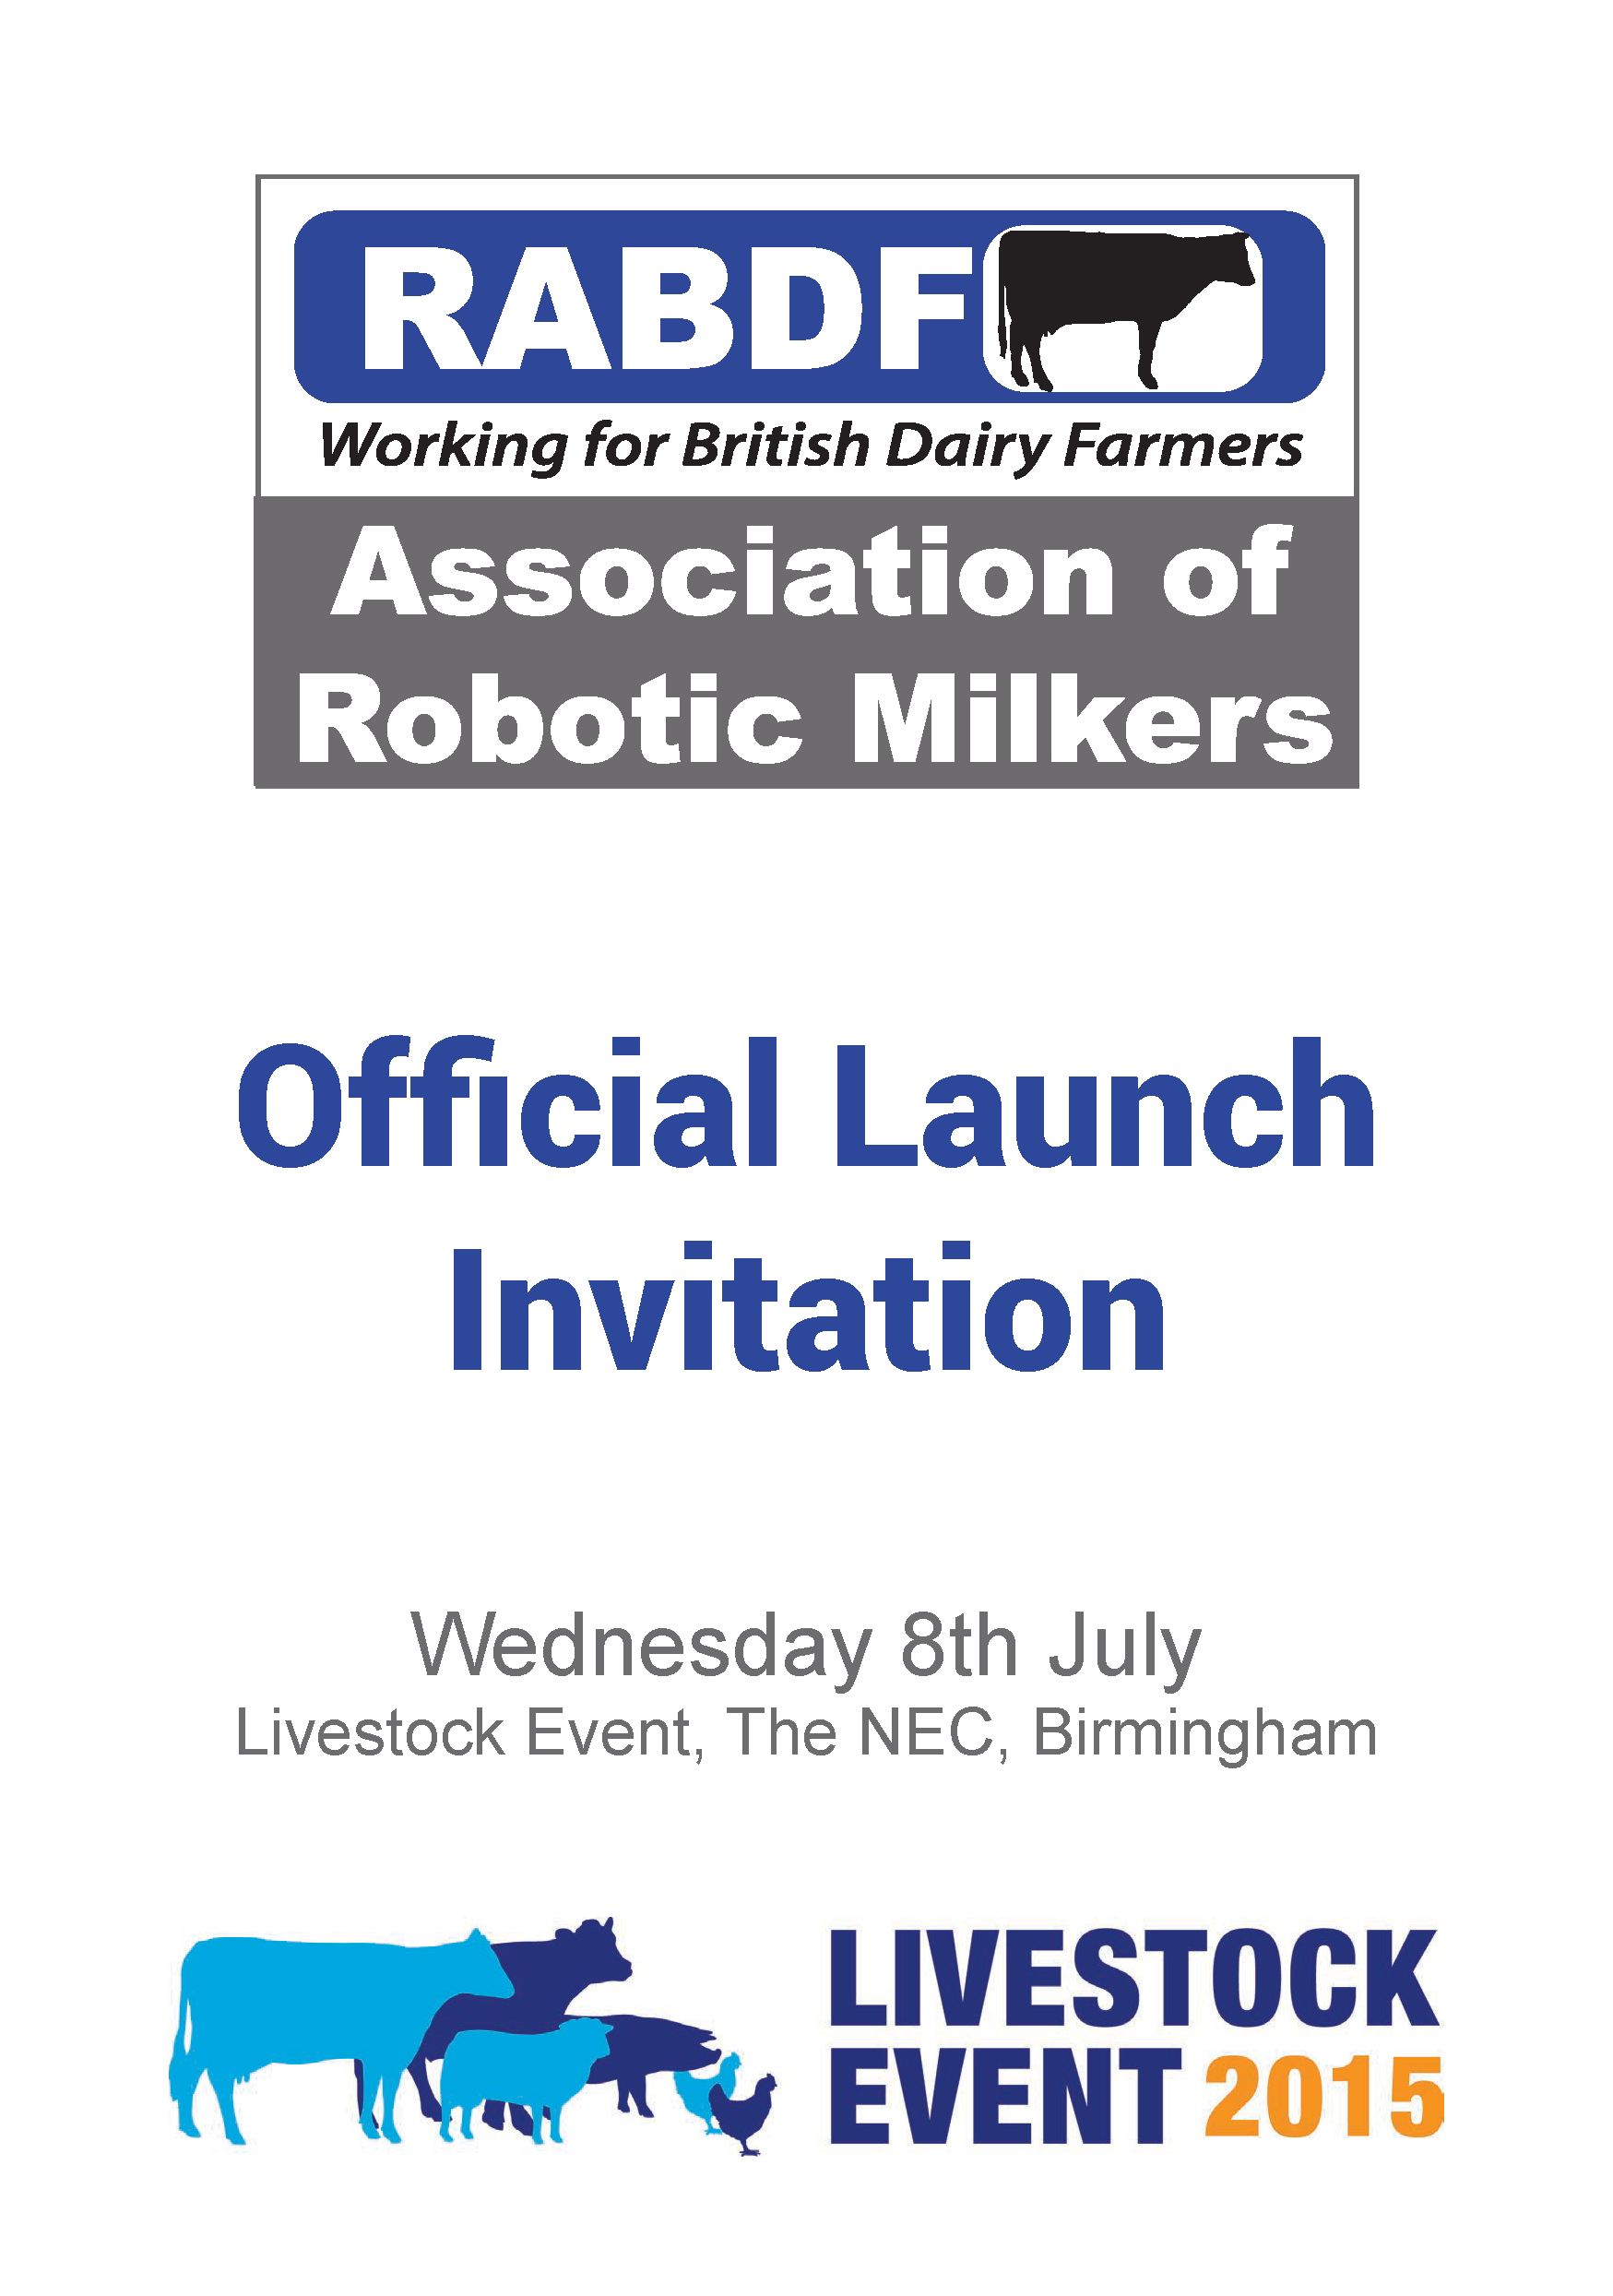 ARM Livestock Event Invite 2015_Page_1.png